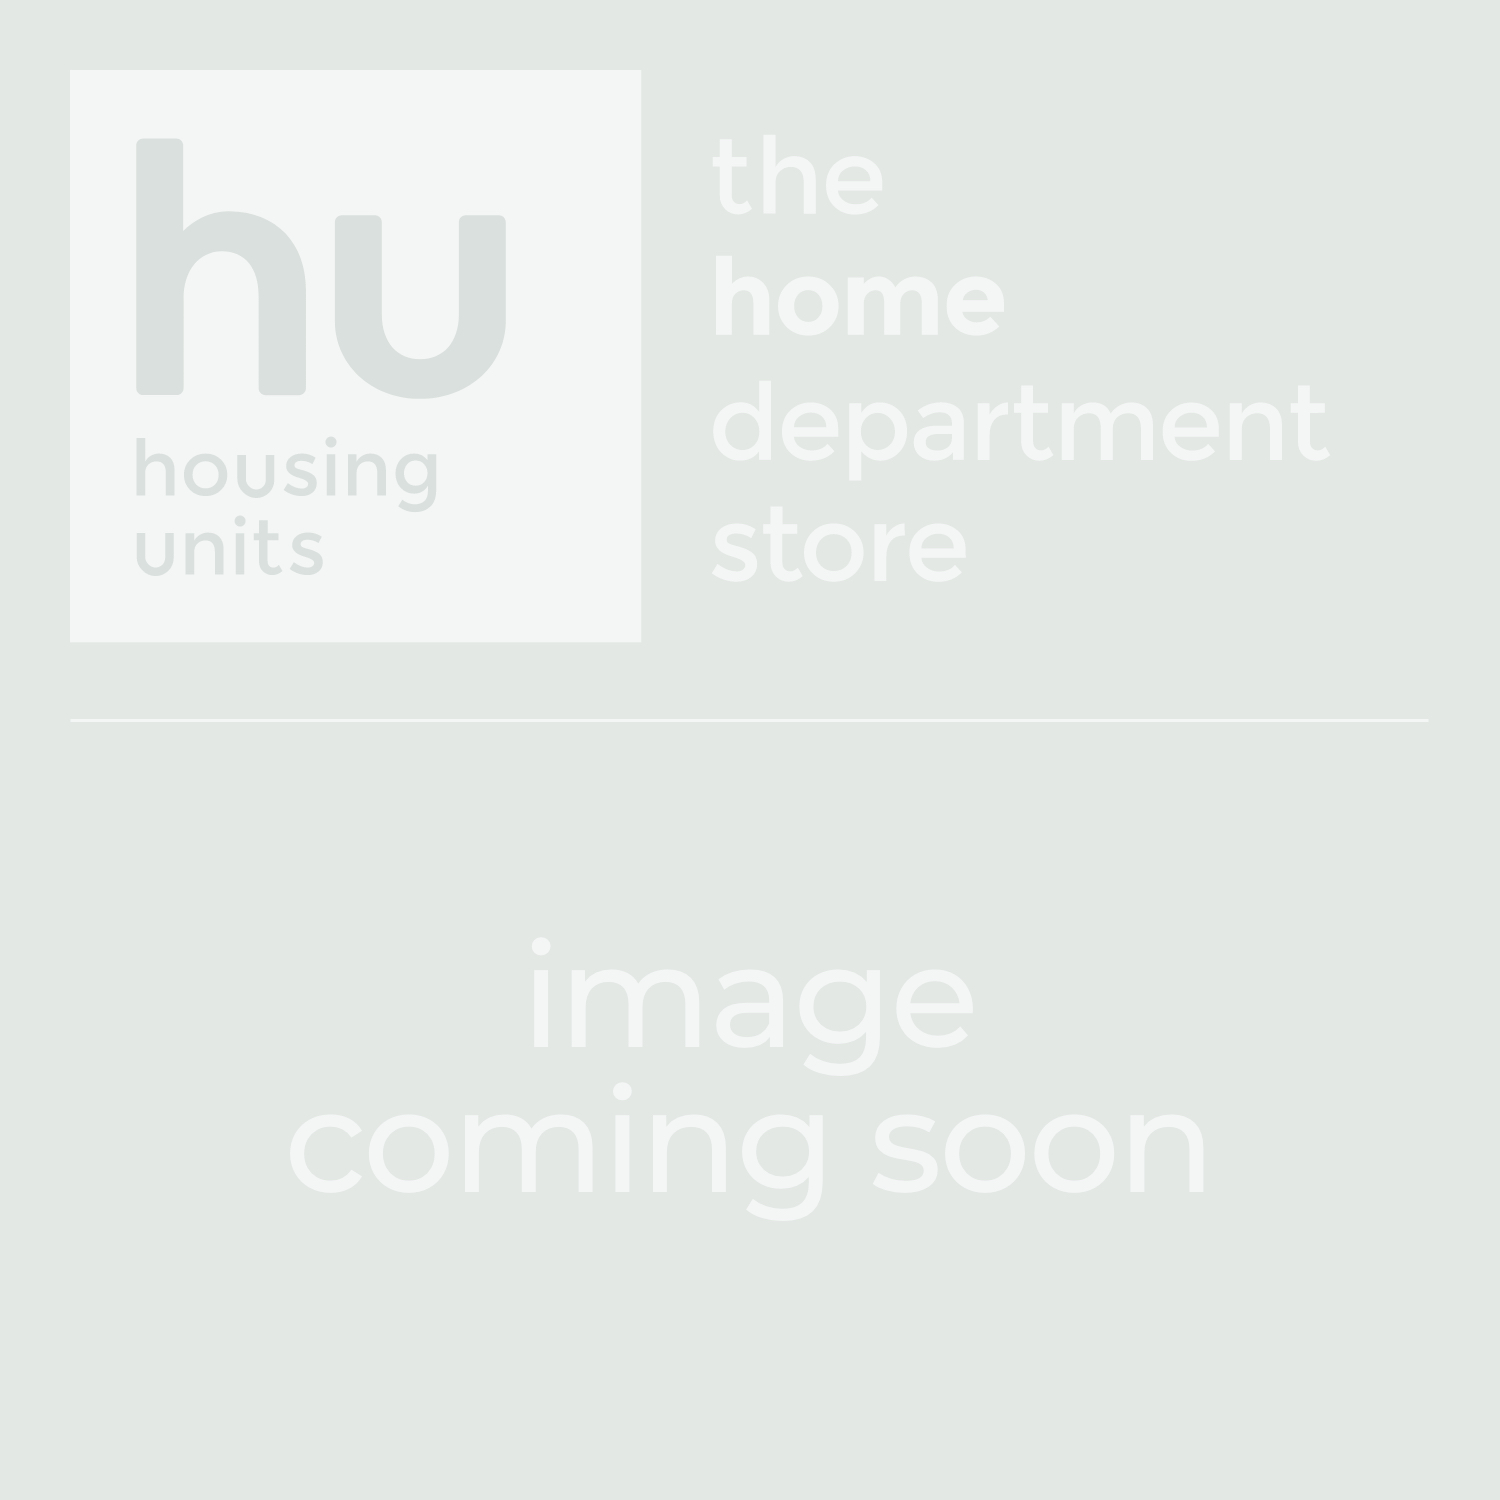 E-cloth Deep Clean Mop | Housing Units